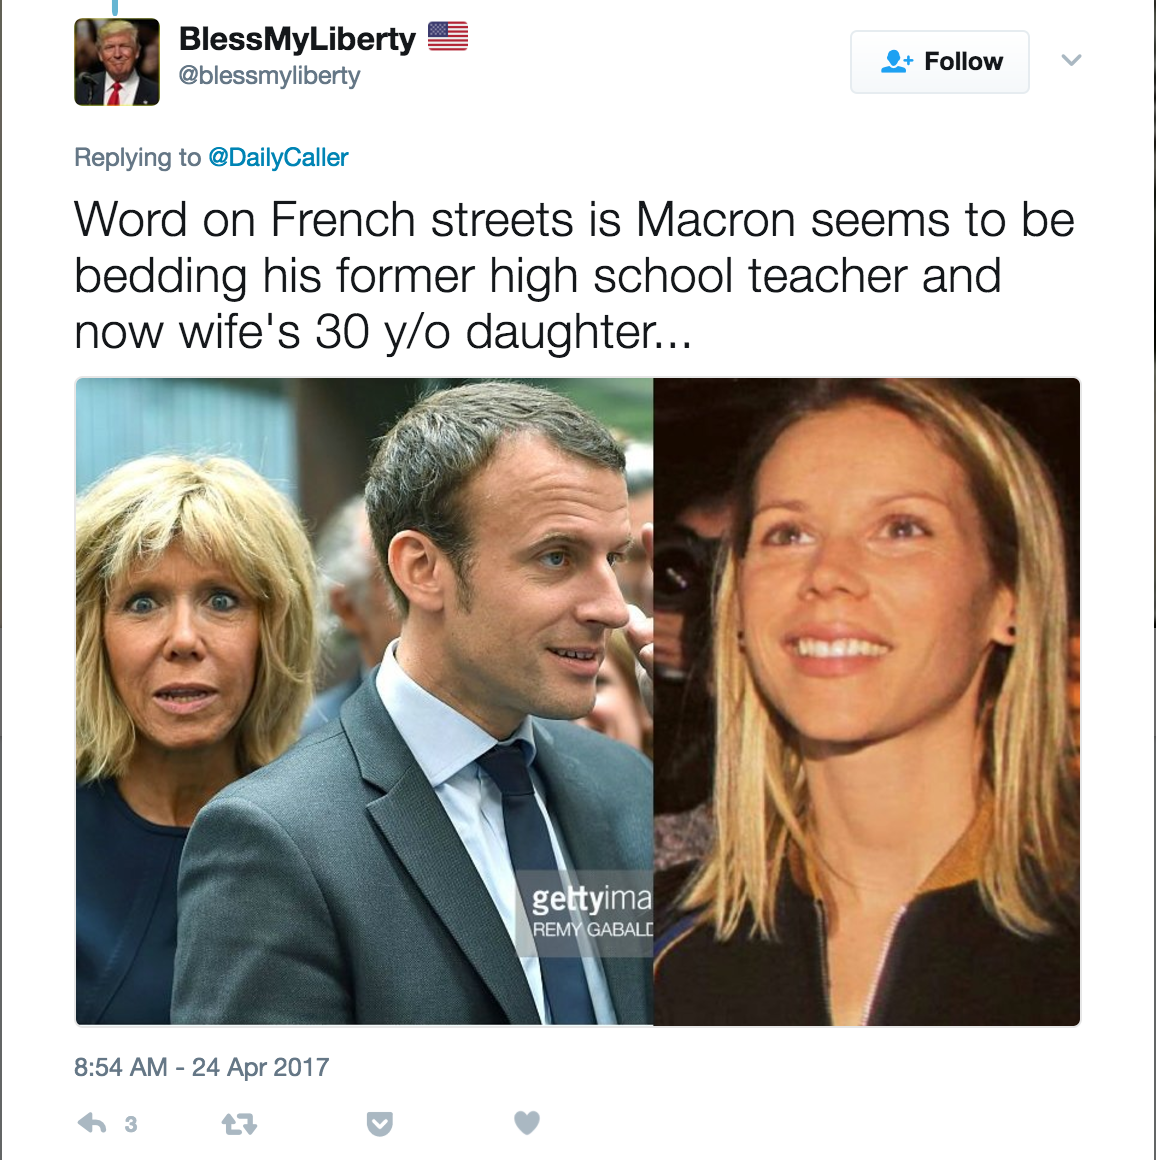 sub buzz 7228 1493110325 1?downsize=715 *&output format=auto&output quality=auto here's how far right trolls are spreading hoaxes about french